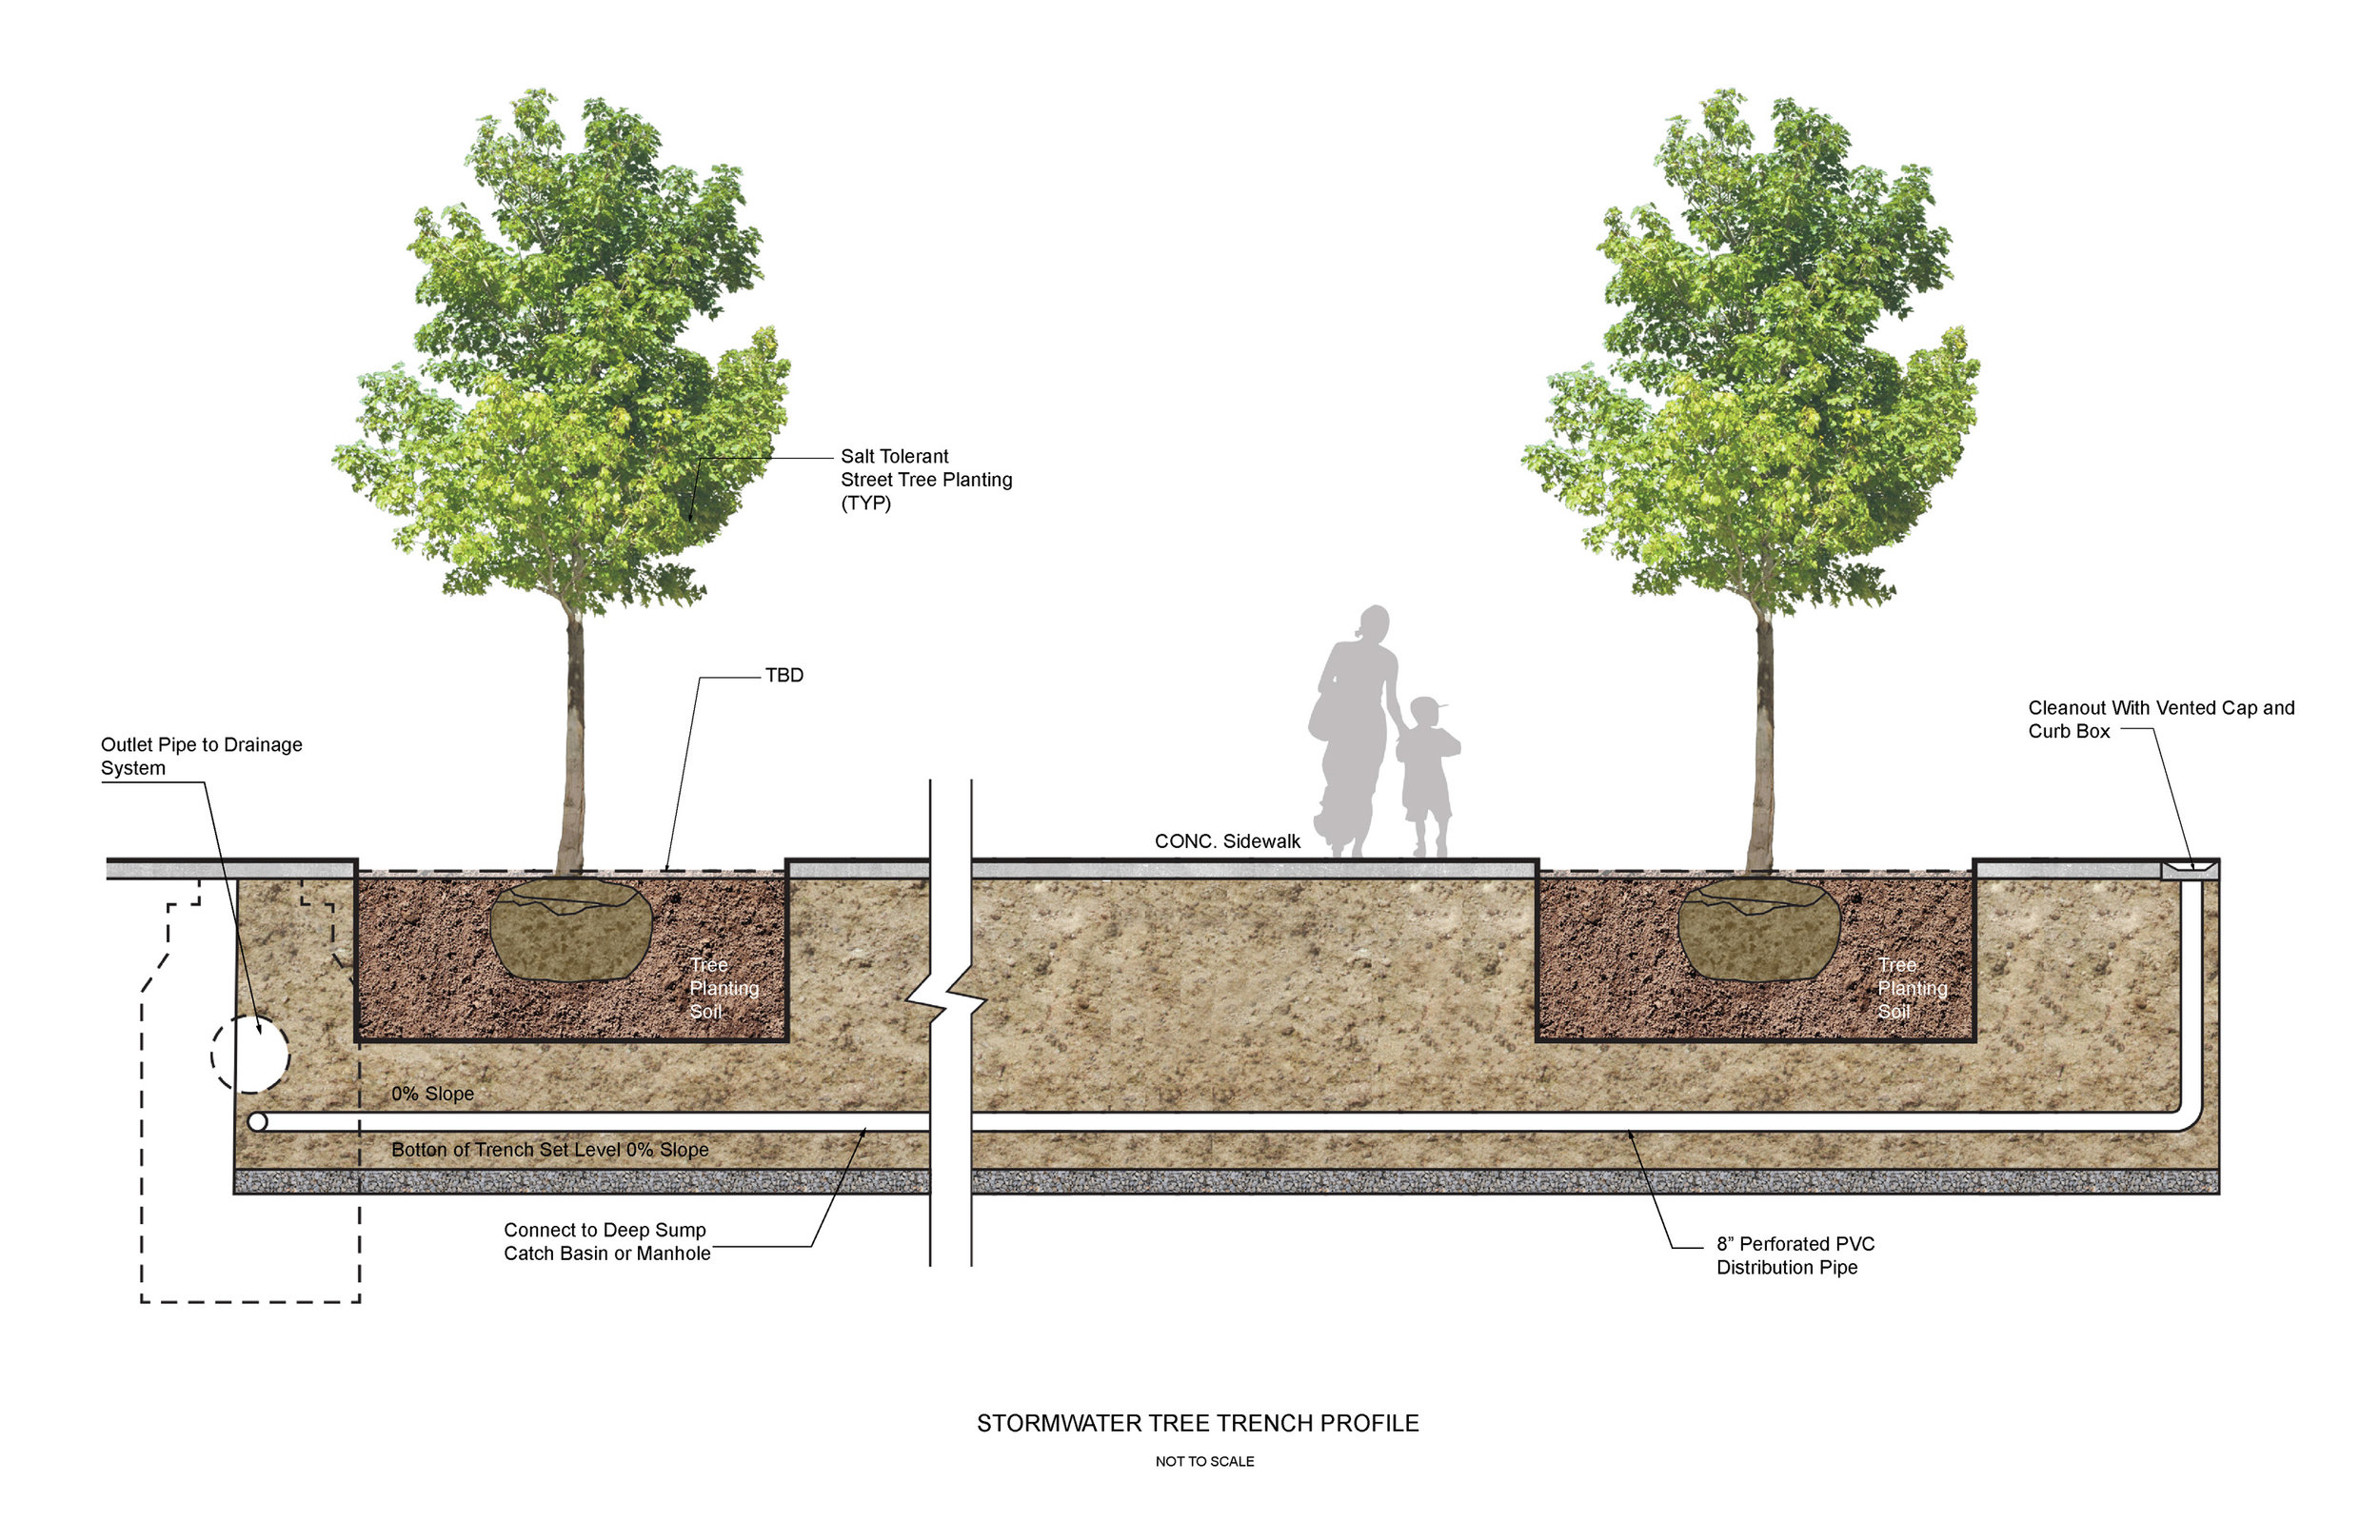 Willard Street - Stormwater Tree Trench Diagram